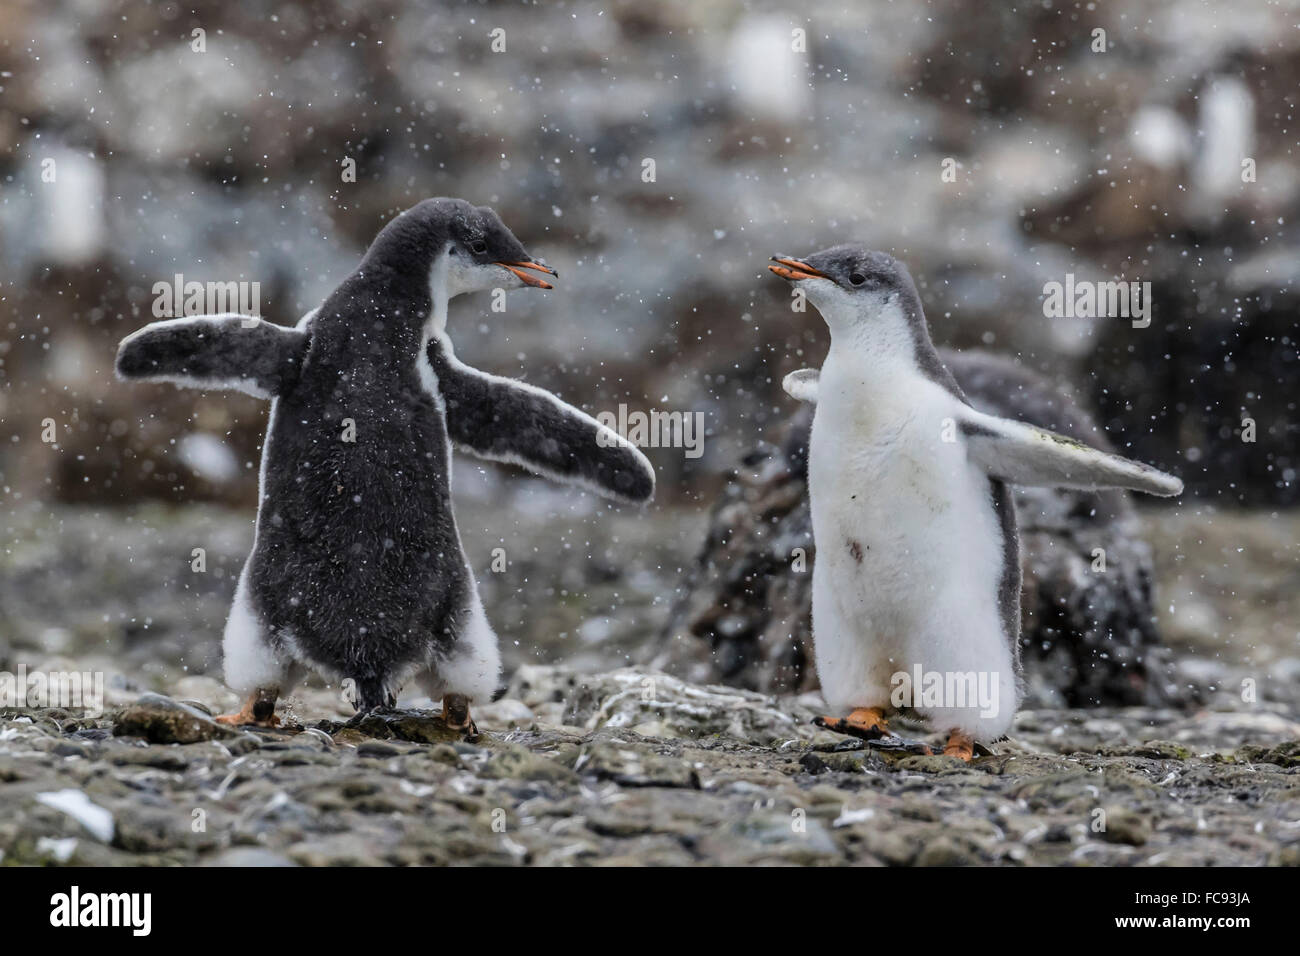 Gentoo penguin chicks (Pygoscelis papua) in ecstatic display at Brown Bluff, Antarctica, Polar Regions - Stock Image